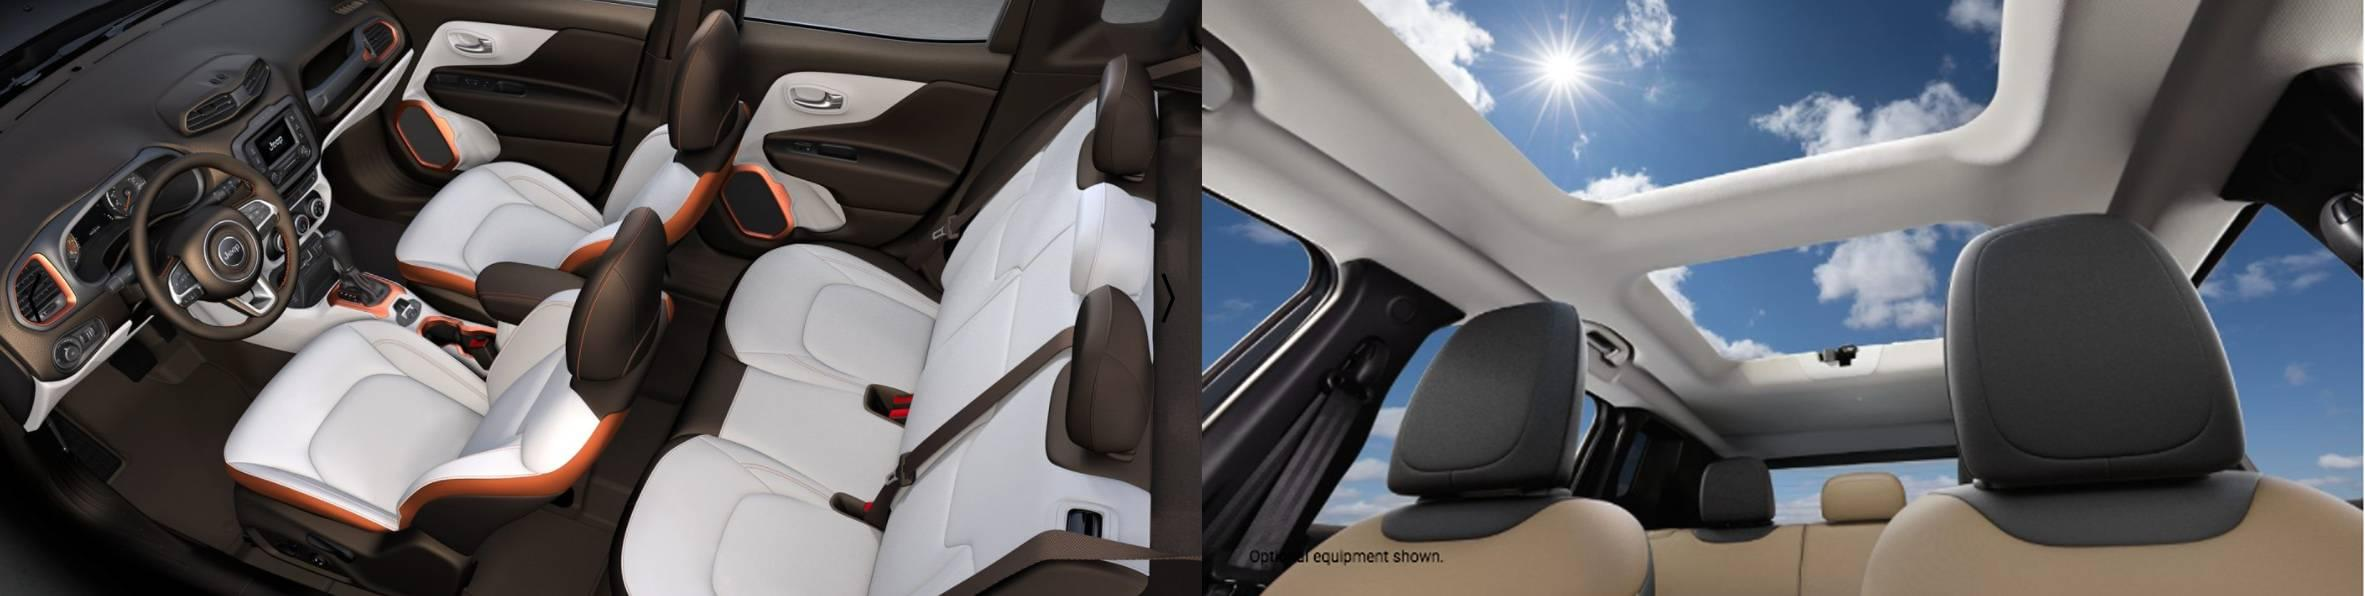 Renegade Interior / Sunroof